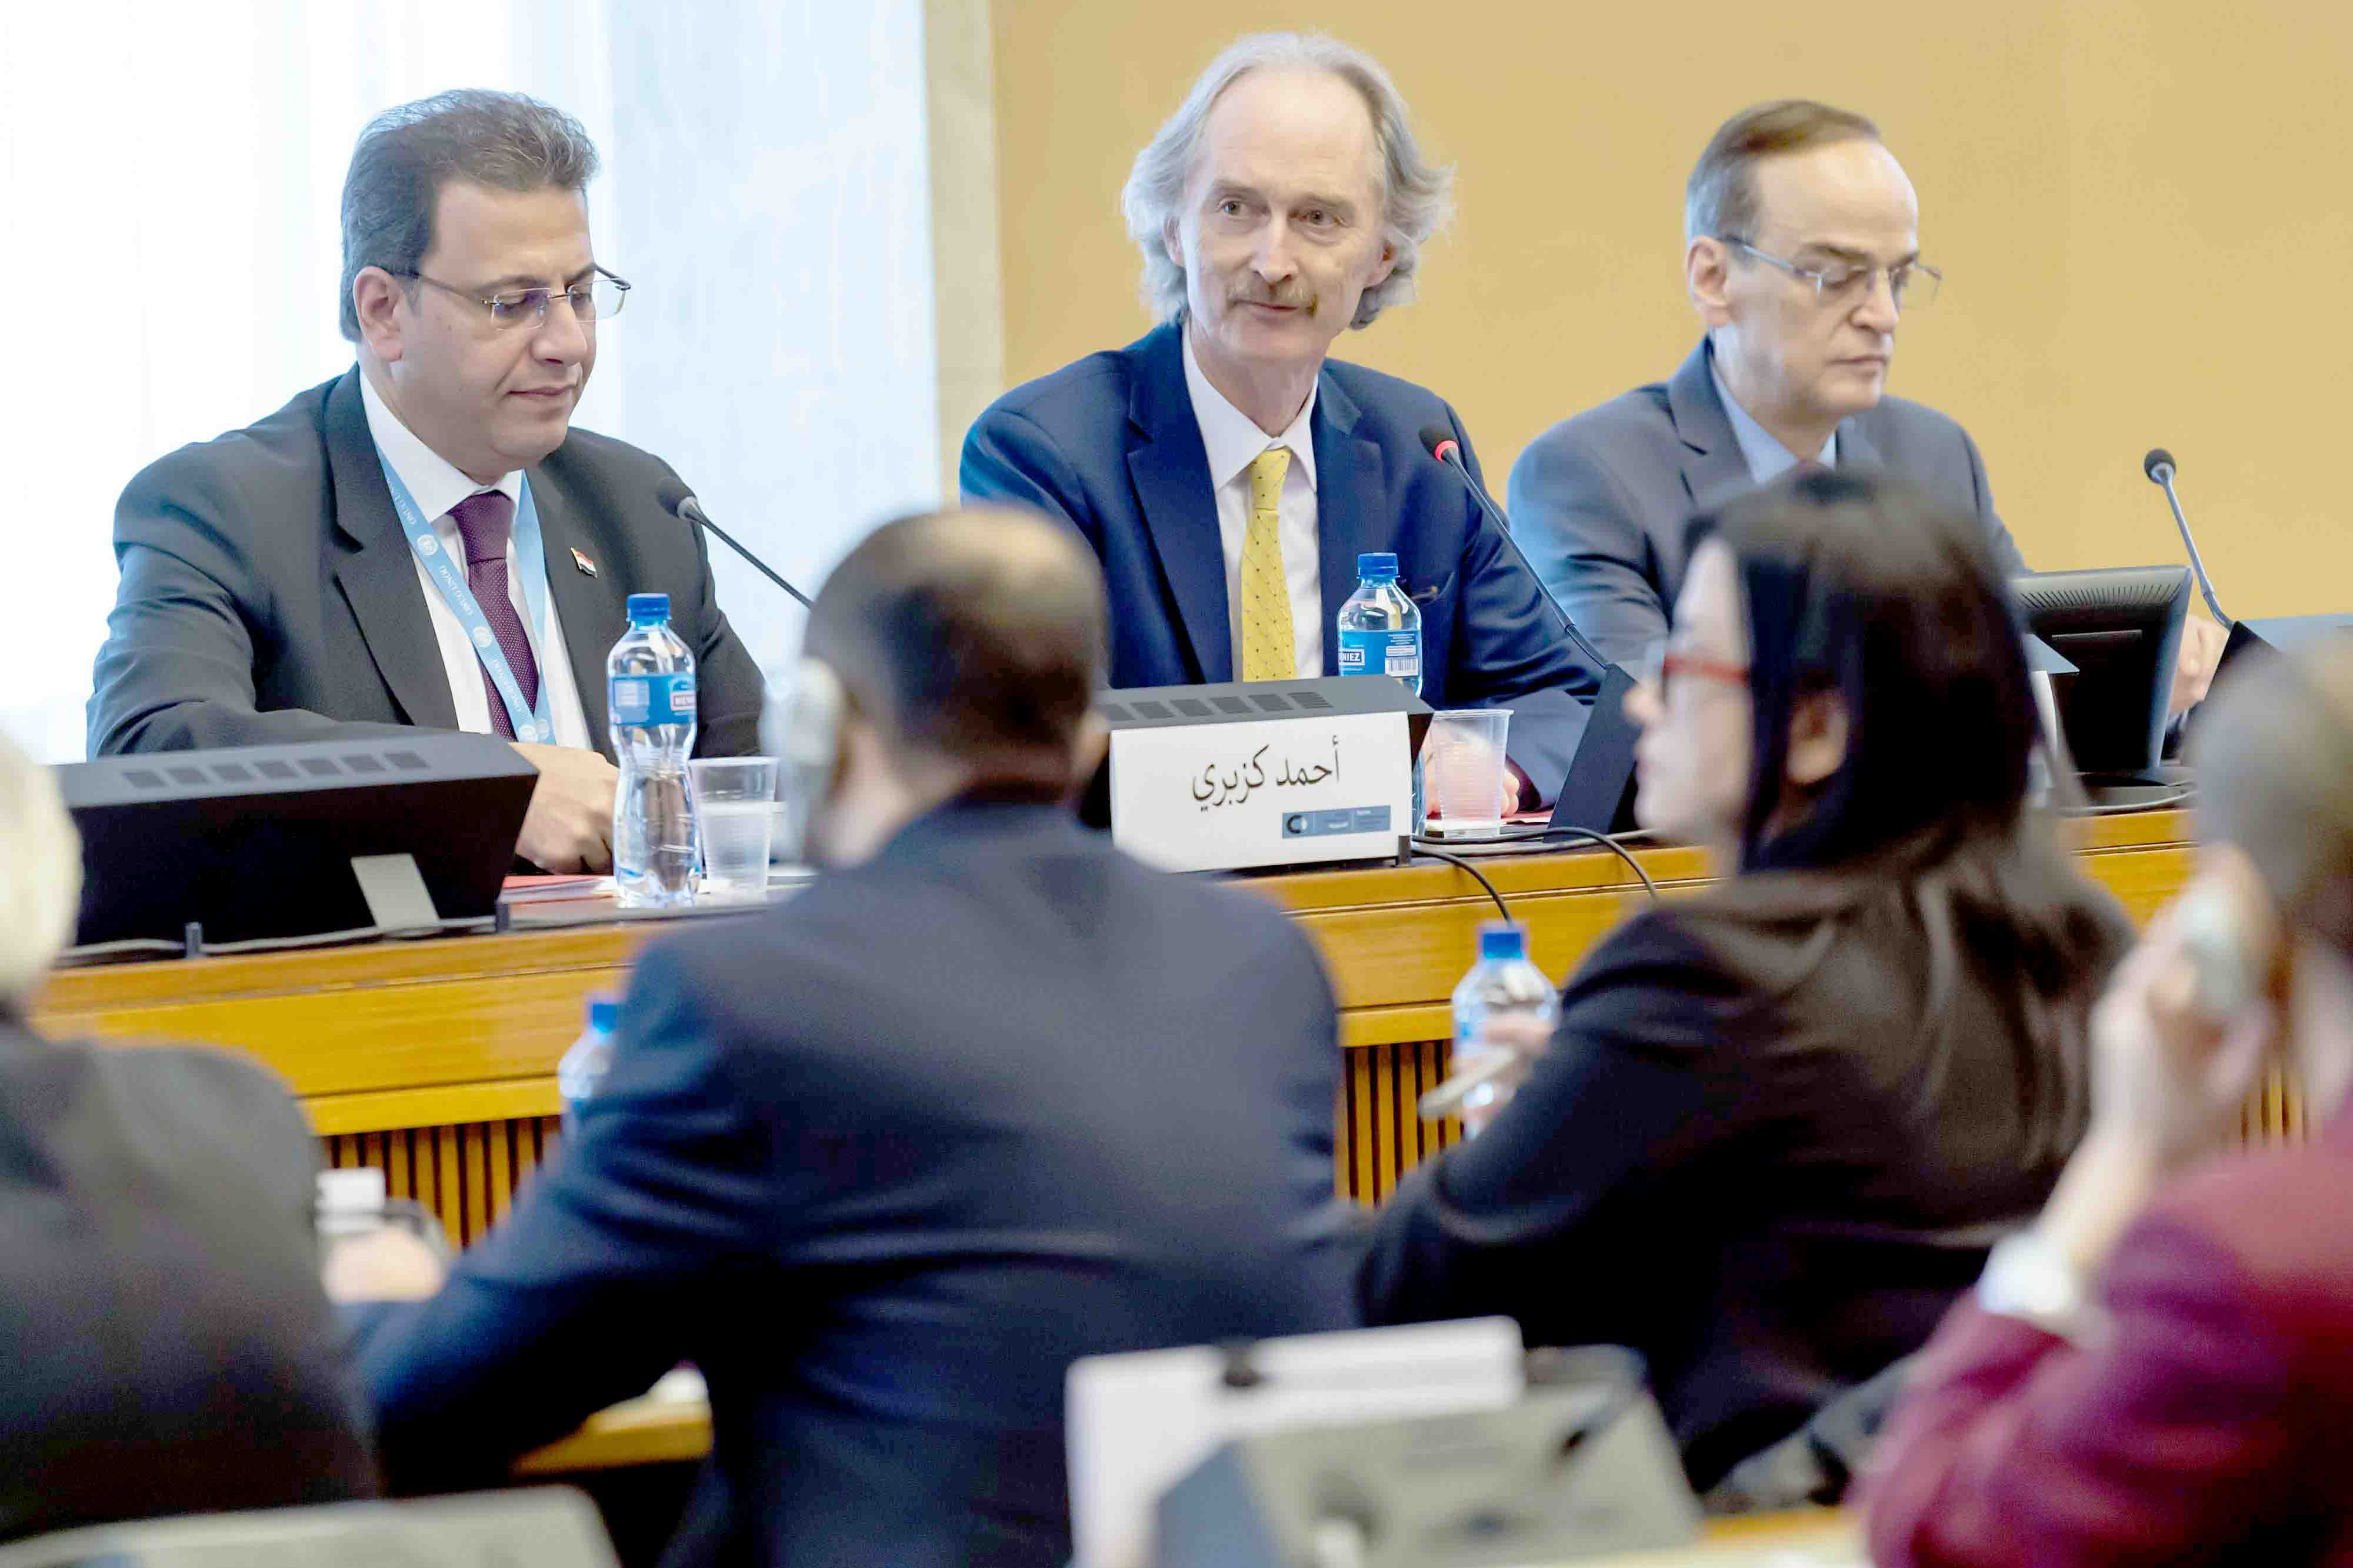 A Syrian-led process. UN Special Envoy to Syria Geir Pedersen (C), Syrian MP Ahmad Al-Kuzbari (L) and head of Opposition Syrian Negotiations Commission Hadi Al-Bahra attend a meeting of the Syria Constitutional Committee in Geneva, October 31.(AFP)